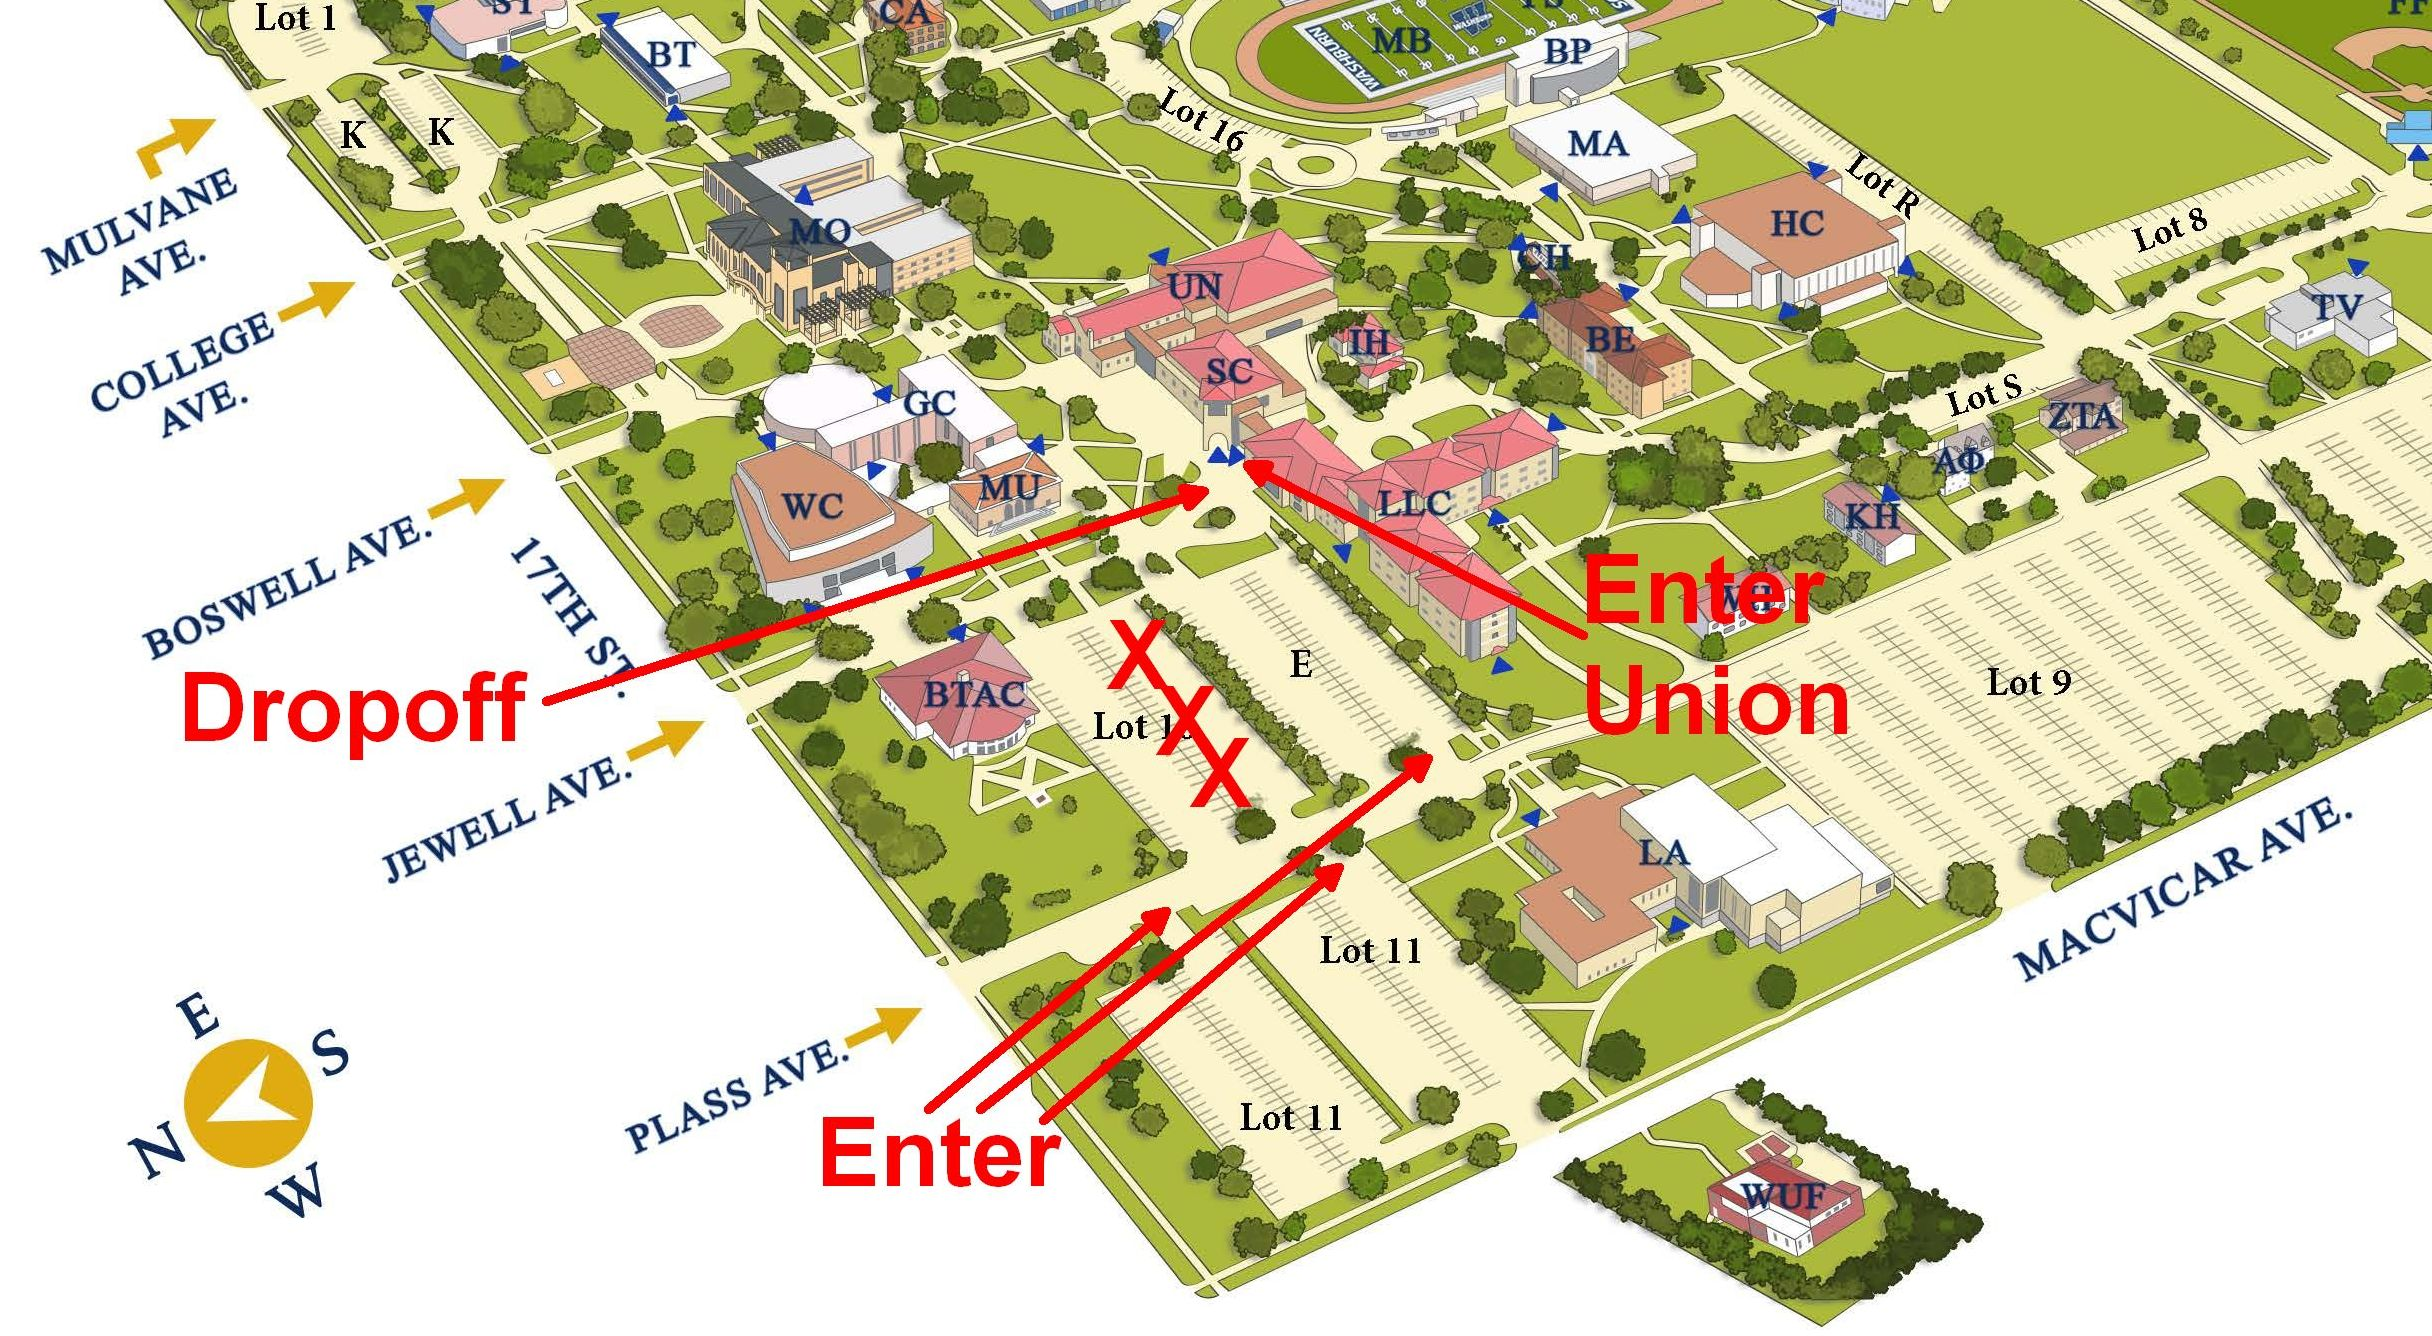 washburn university campus map Commemorating The 65th Anniversary Of Brown V Board Of Education washburn university campus map